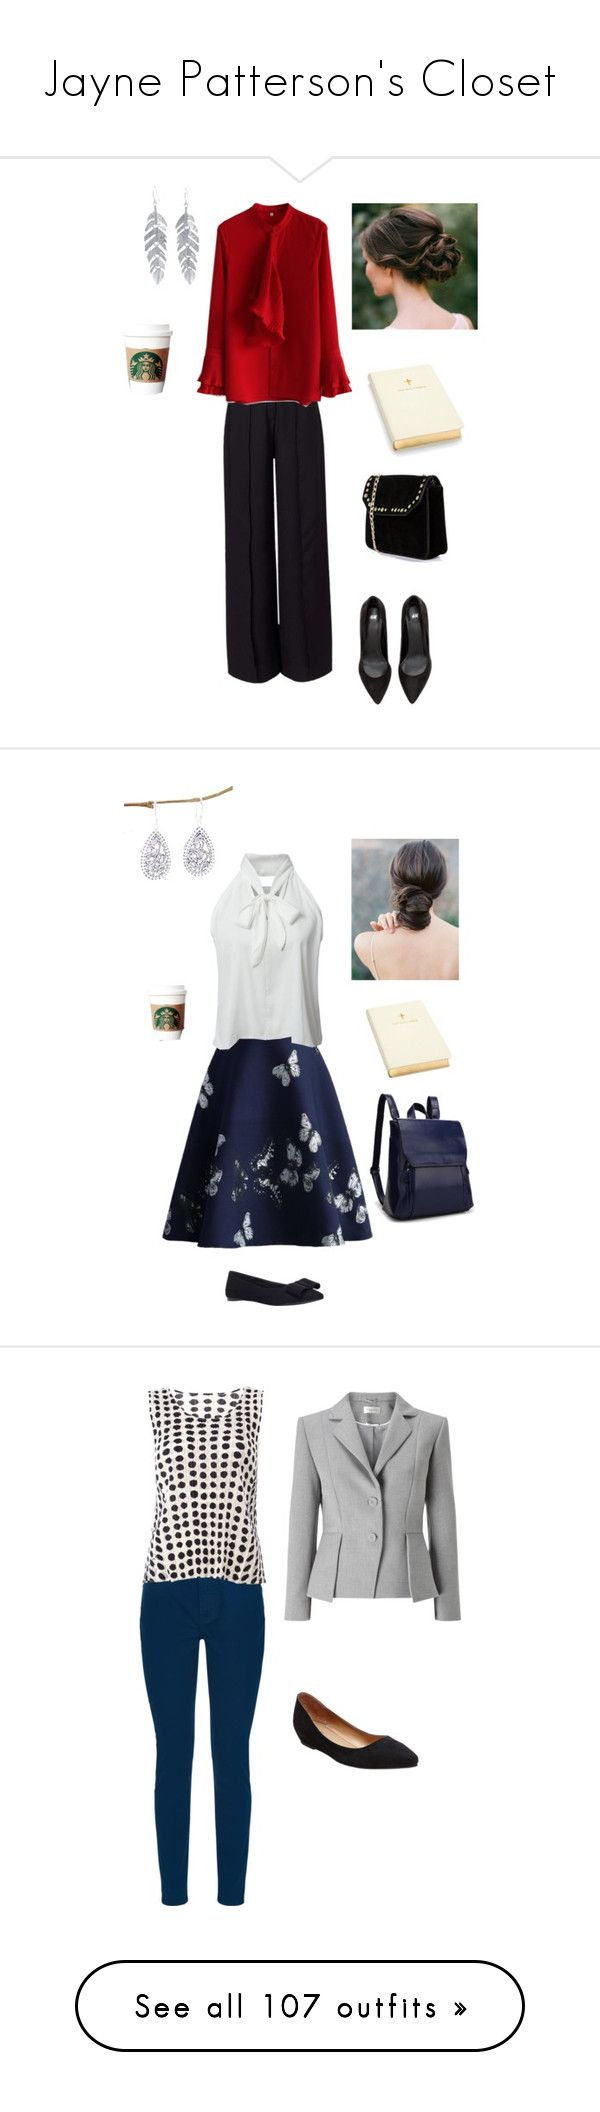 """""""Jayne Patterson's Closet"""" by capfan2014 on Polyvore featuring Miss Selfridge, Chicwish, Boohoo, Belk Silverworks, Aspinal of London, WithChic, Carvela, NOVICA, churchoutfit and Jaeger"""